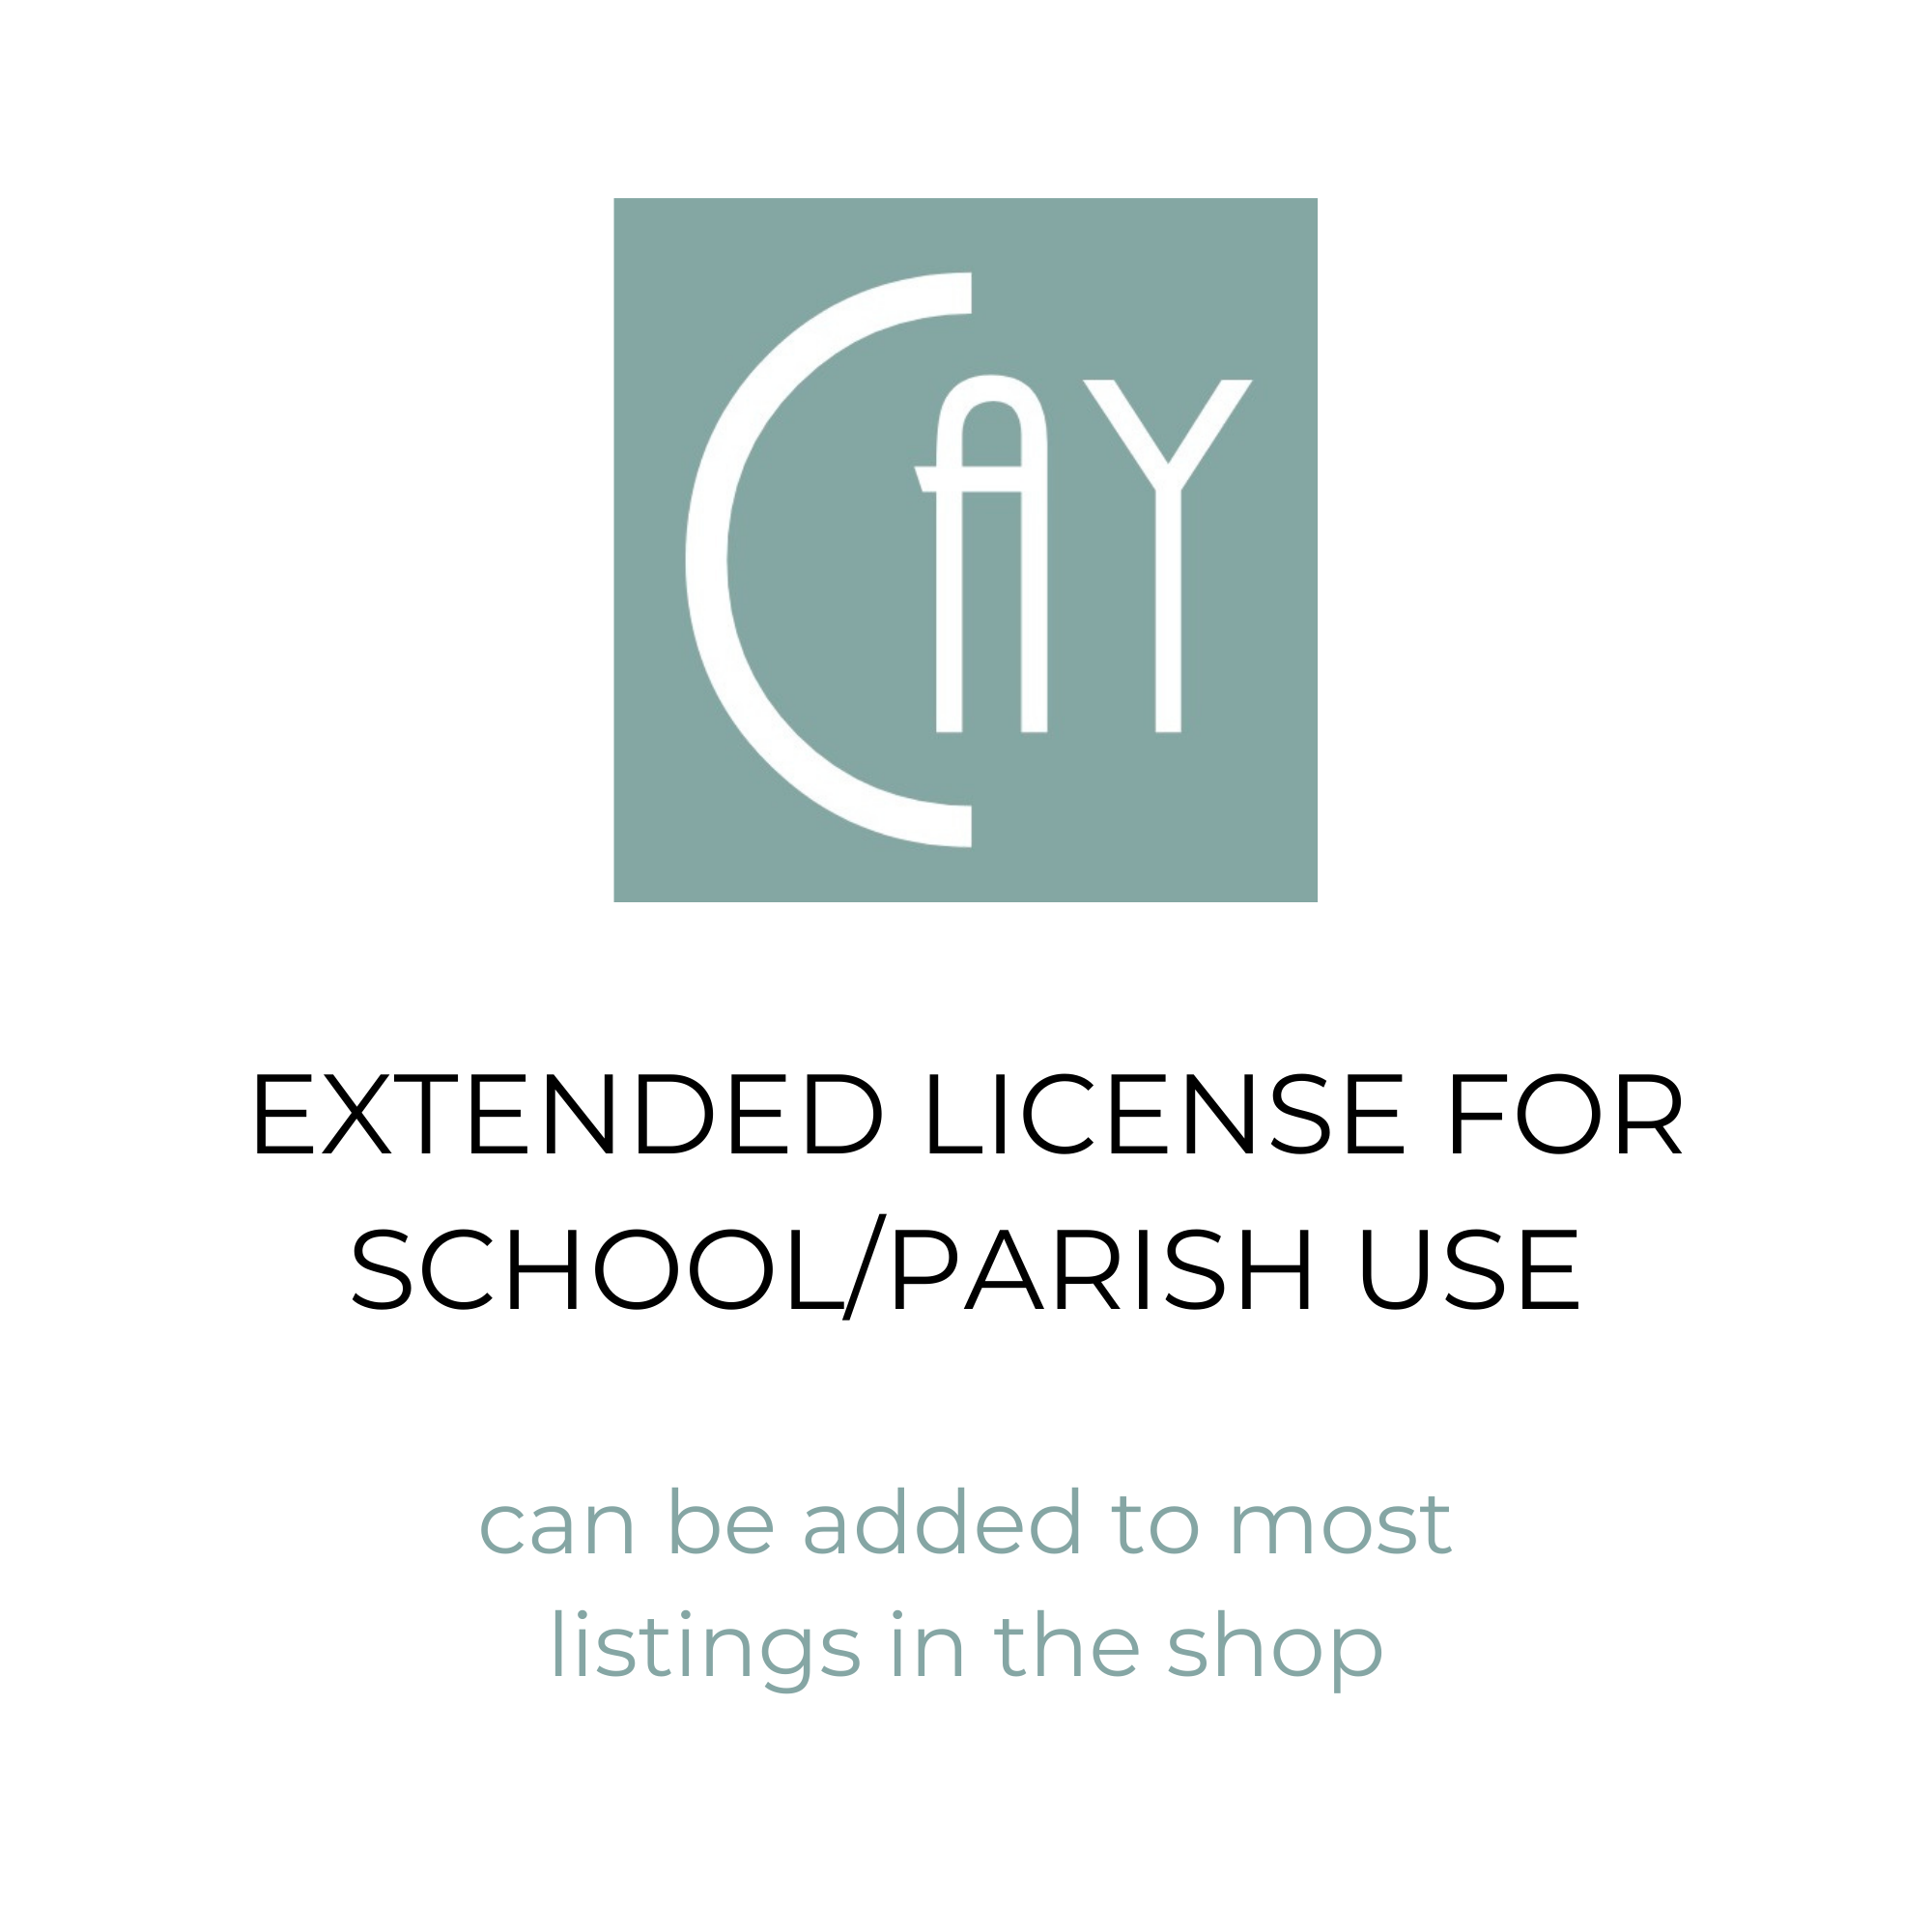 Extended License for School/Parish Use